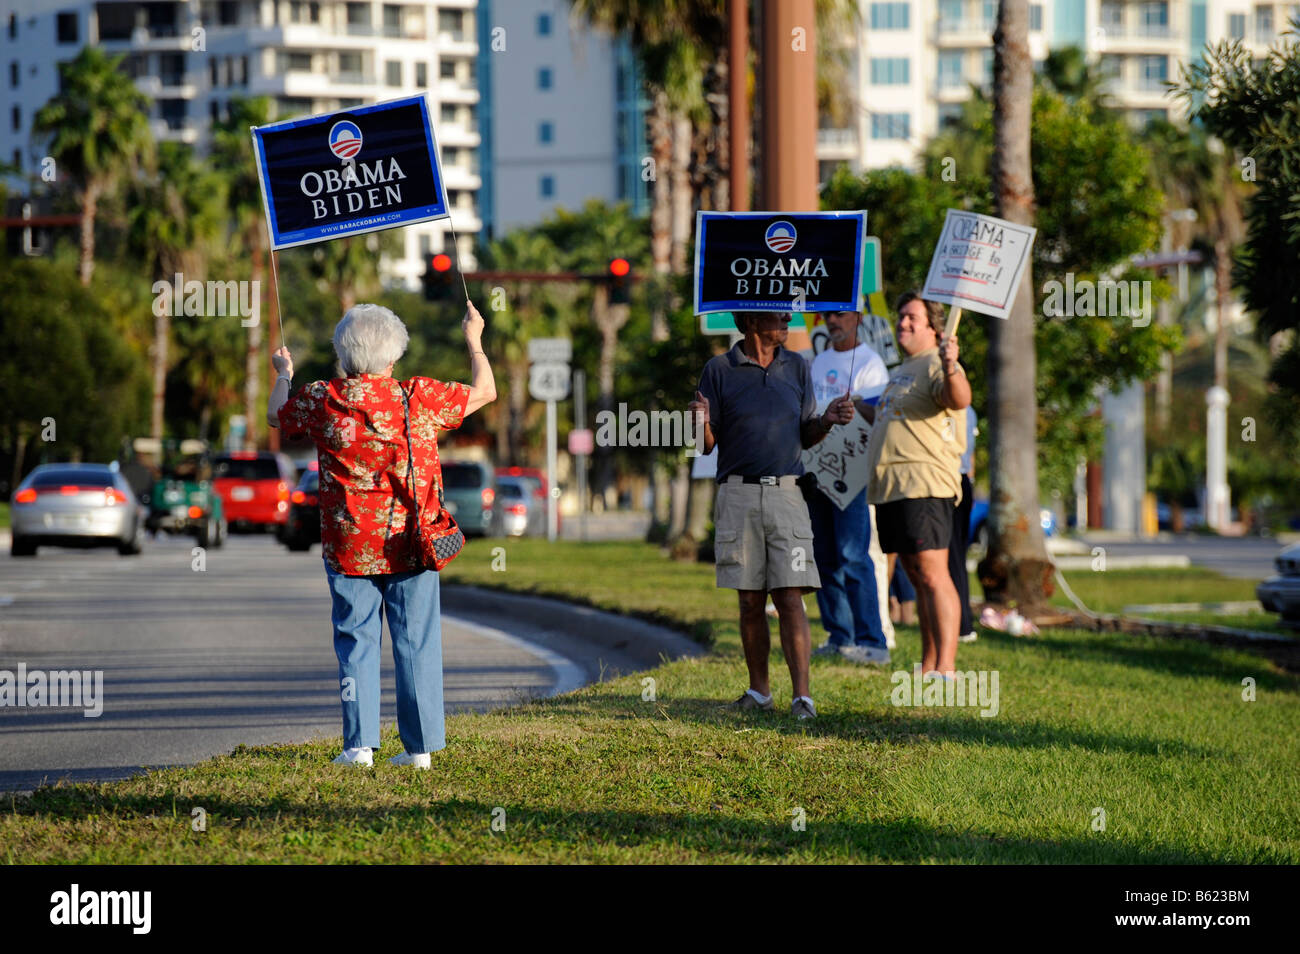 Supporters show signs for Barack Obama for President on busy road - Stock Image